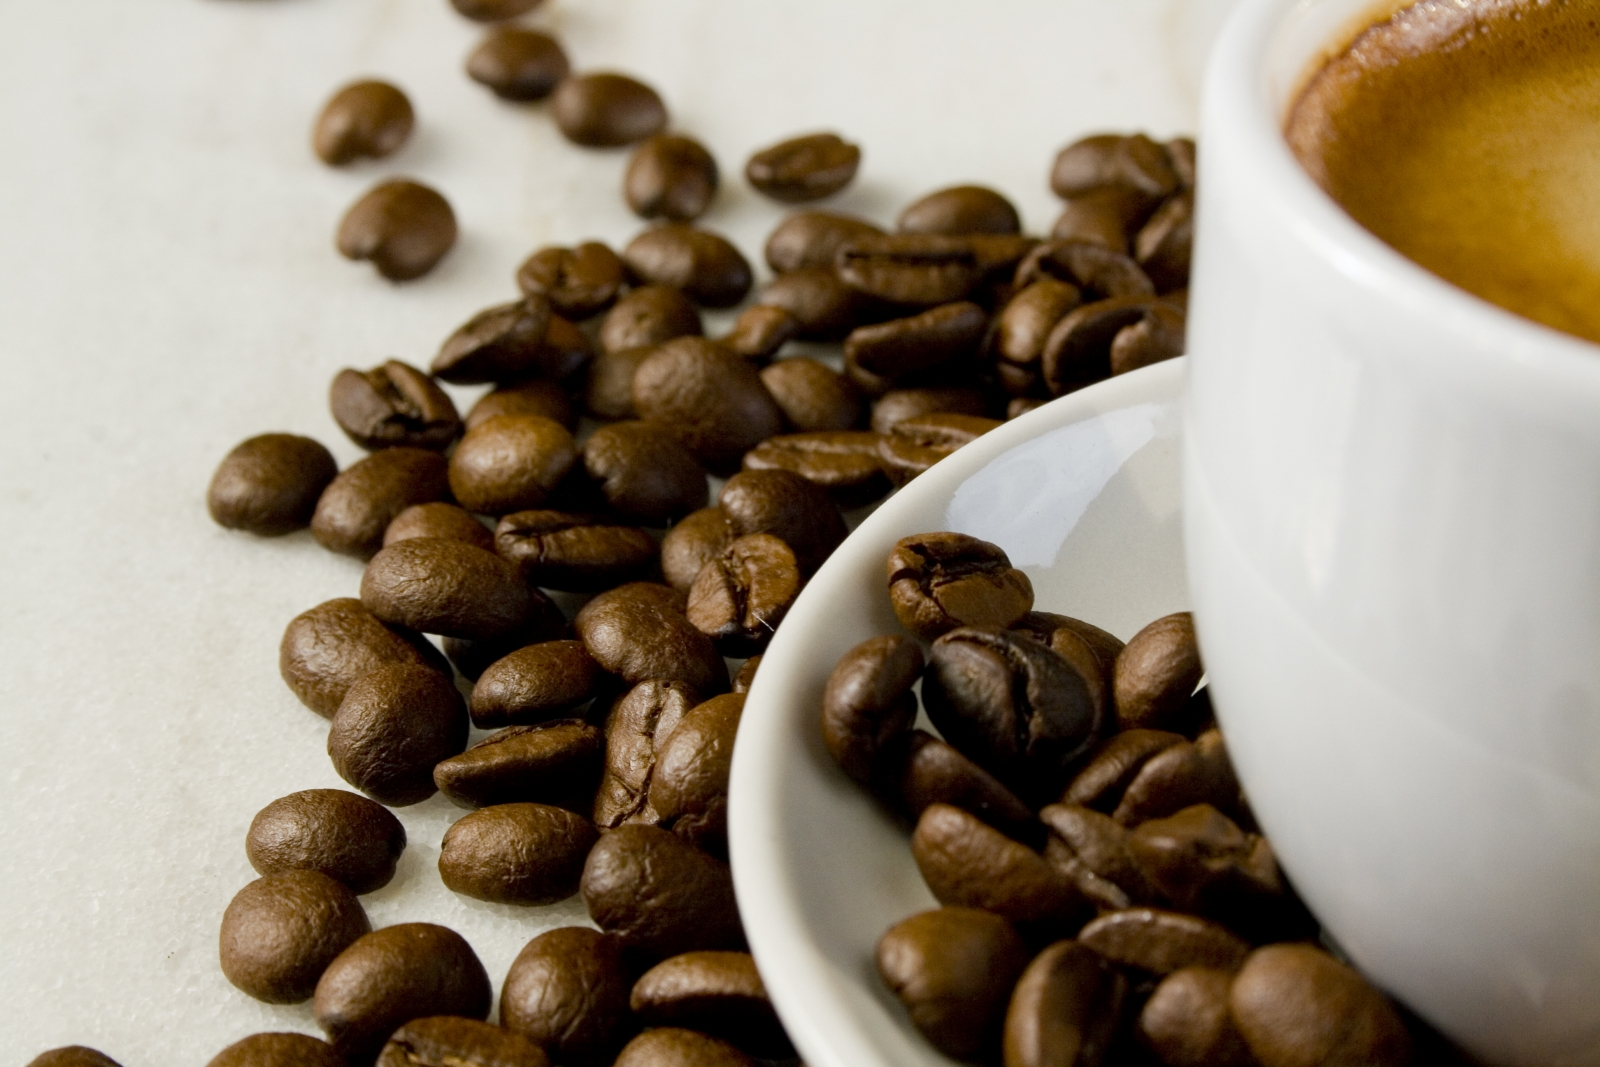 Drinking Coffee Helps You Live Longer, Pair Of New Studies Confirm